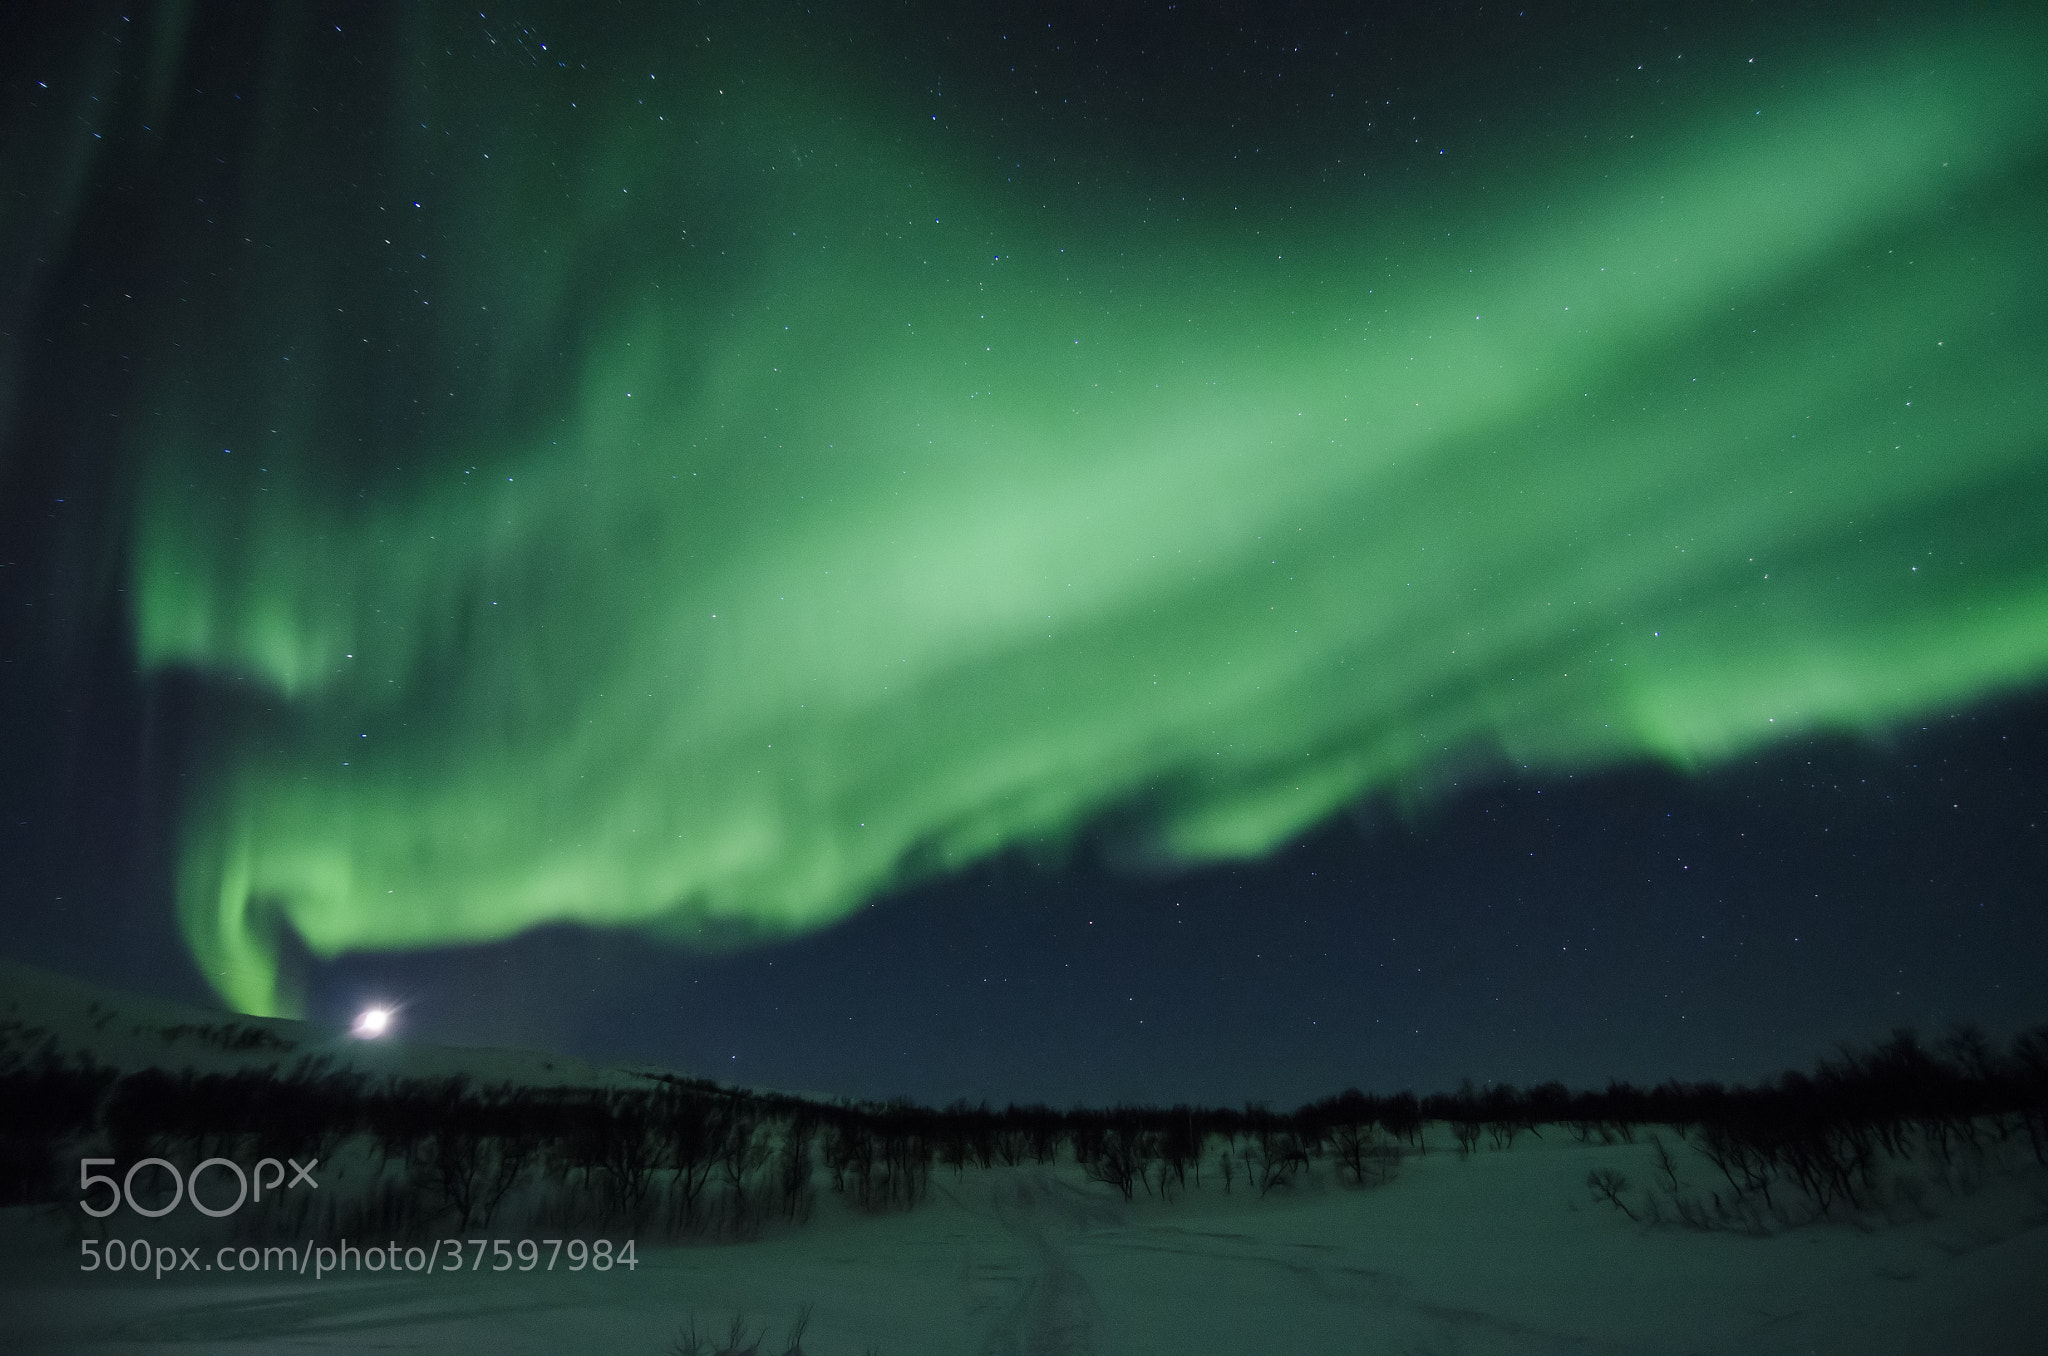 Photograph Fireworks in the sky 3 by Espen Hanssen on 500px